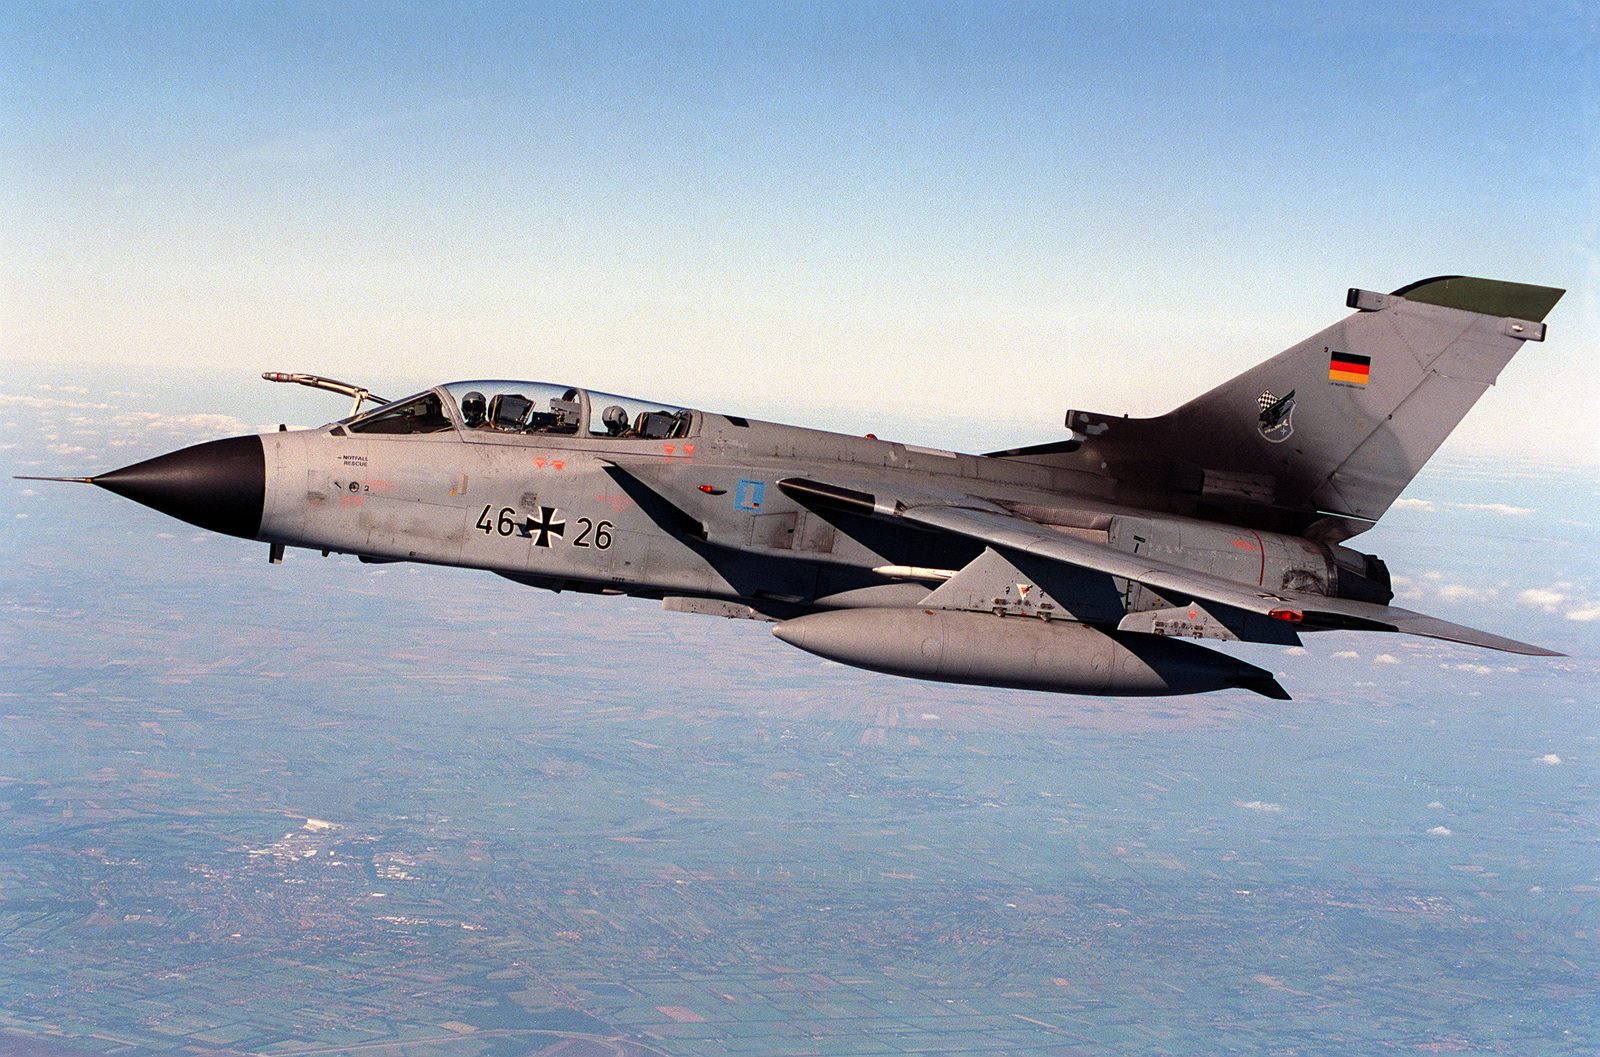 A German GR1 Tornado high speed attack aircraft flies just forward of the right wing of a U.S. Air Force KC-135R tanker, waiting it's turn to be refueled